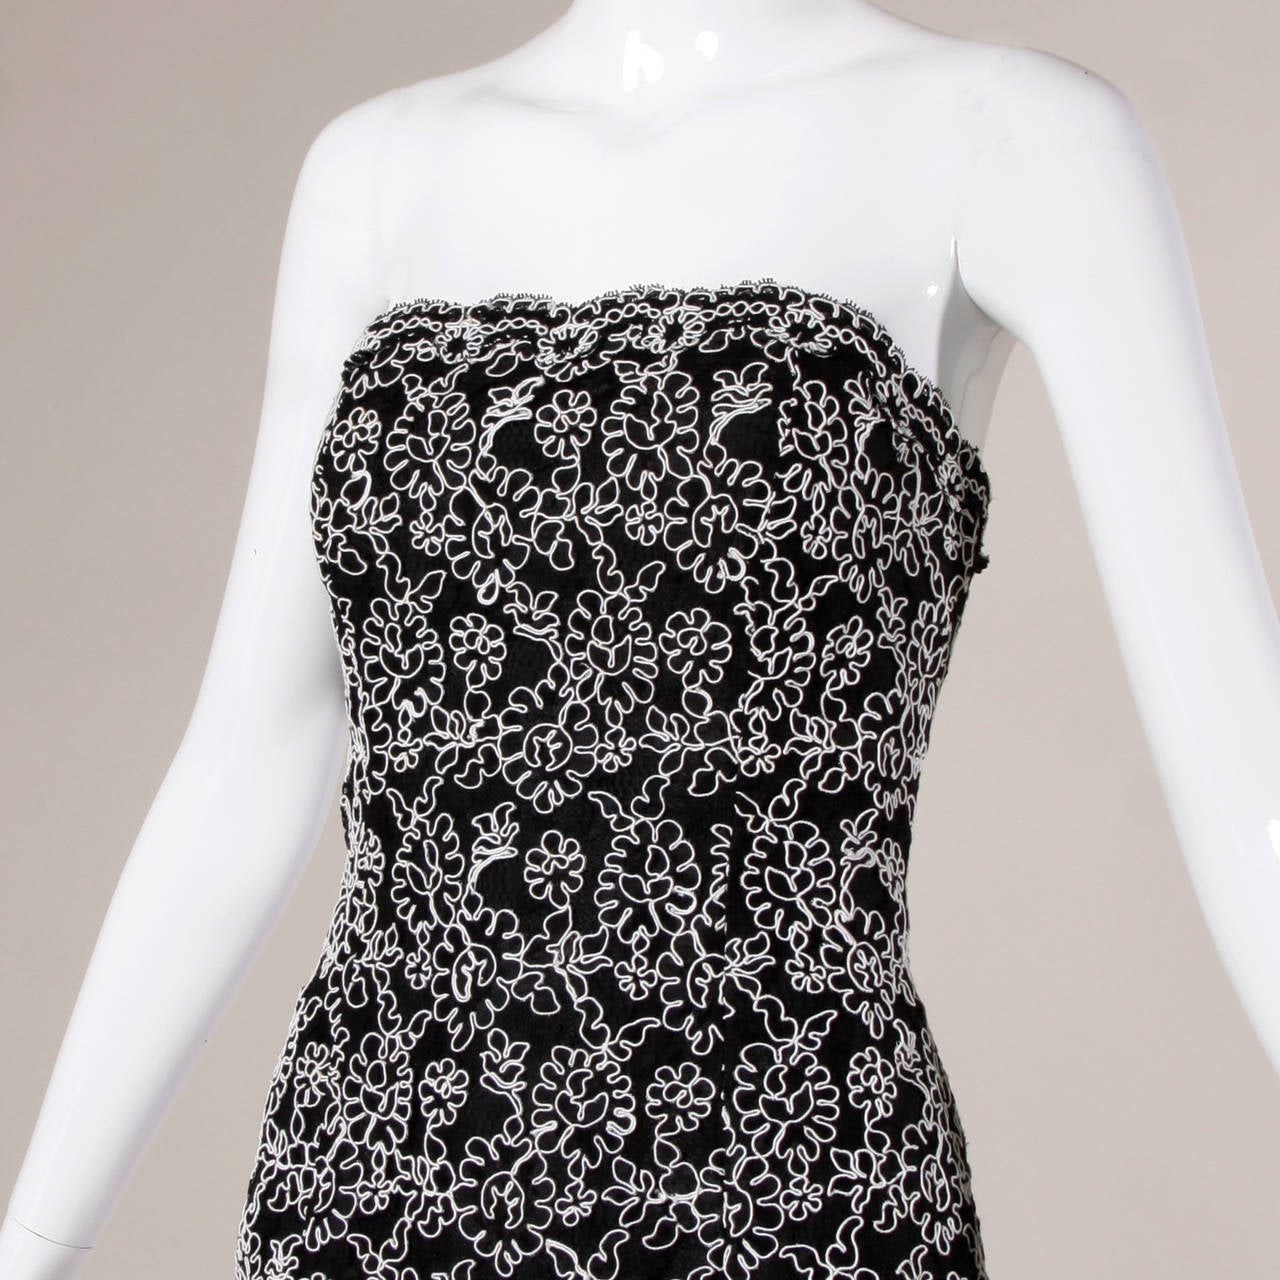 Vintage black lace cocktail dress with white tambour embroidery by Bill Blass. 